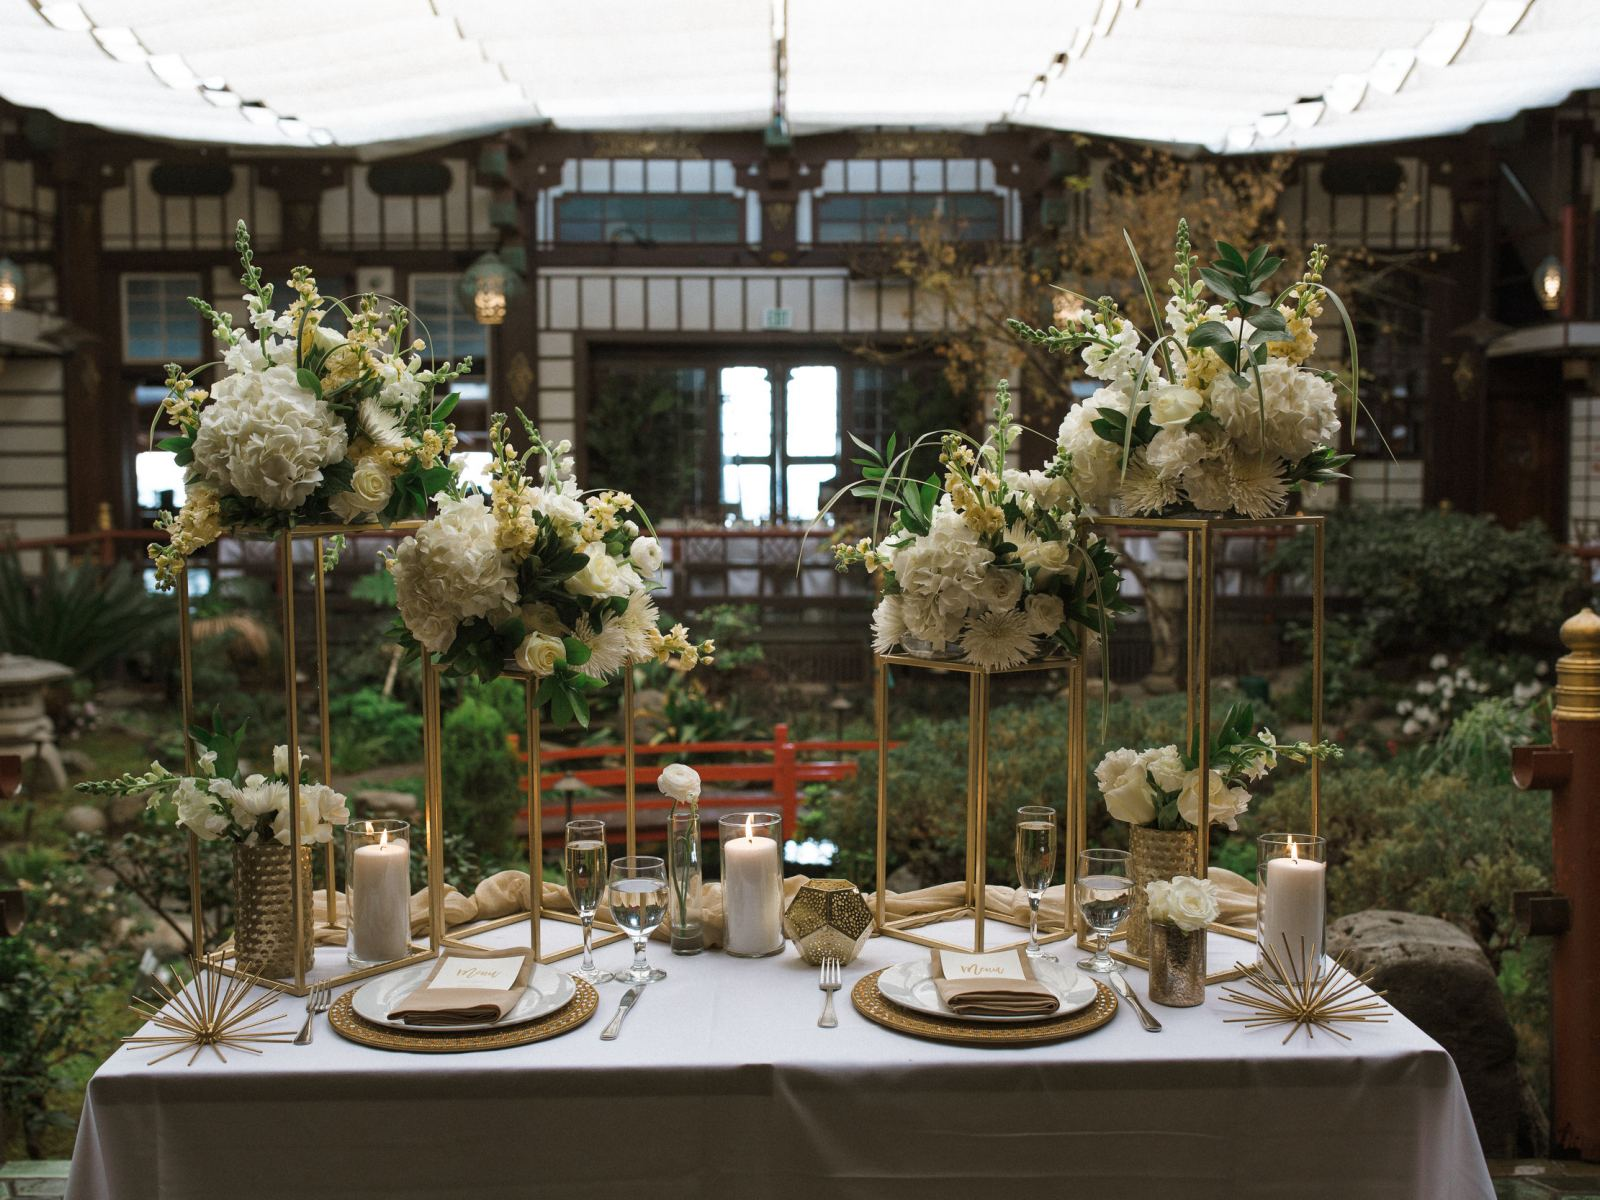 La S Best Museums Gardens And Restaurants For Weddings Discover